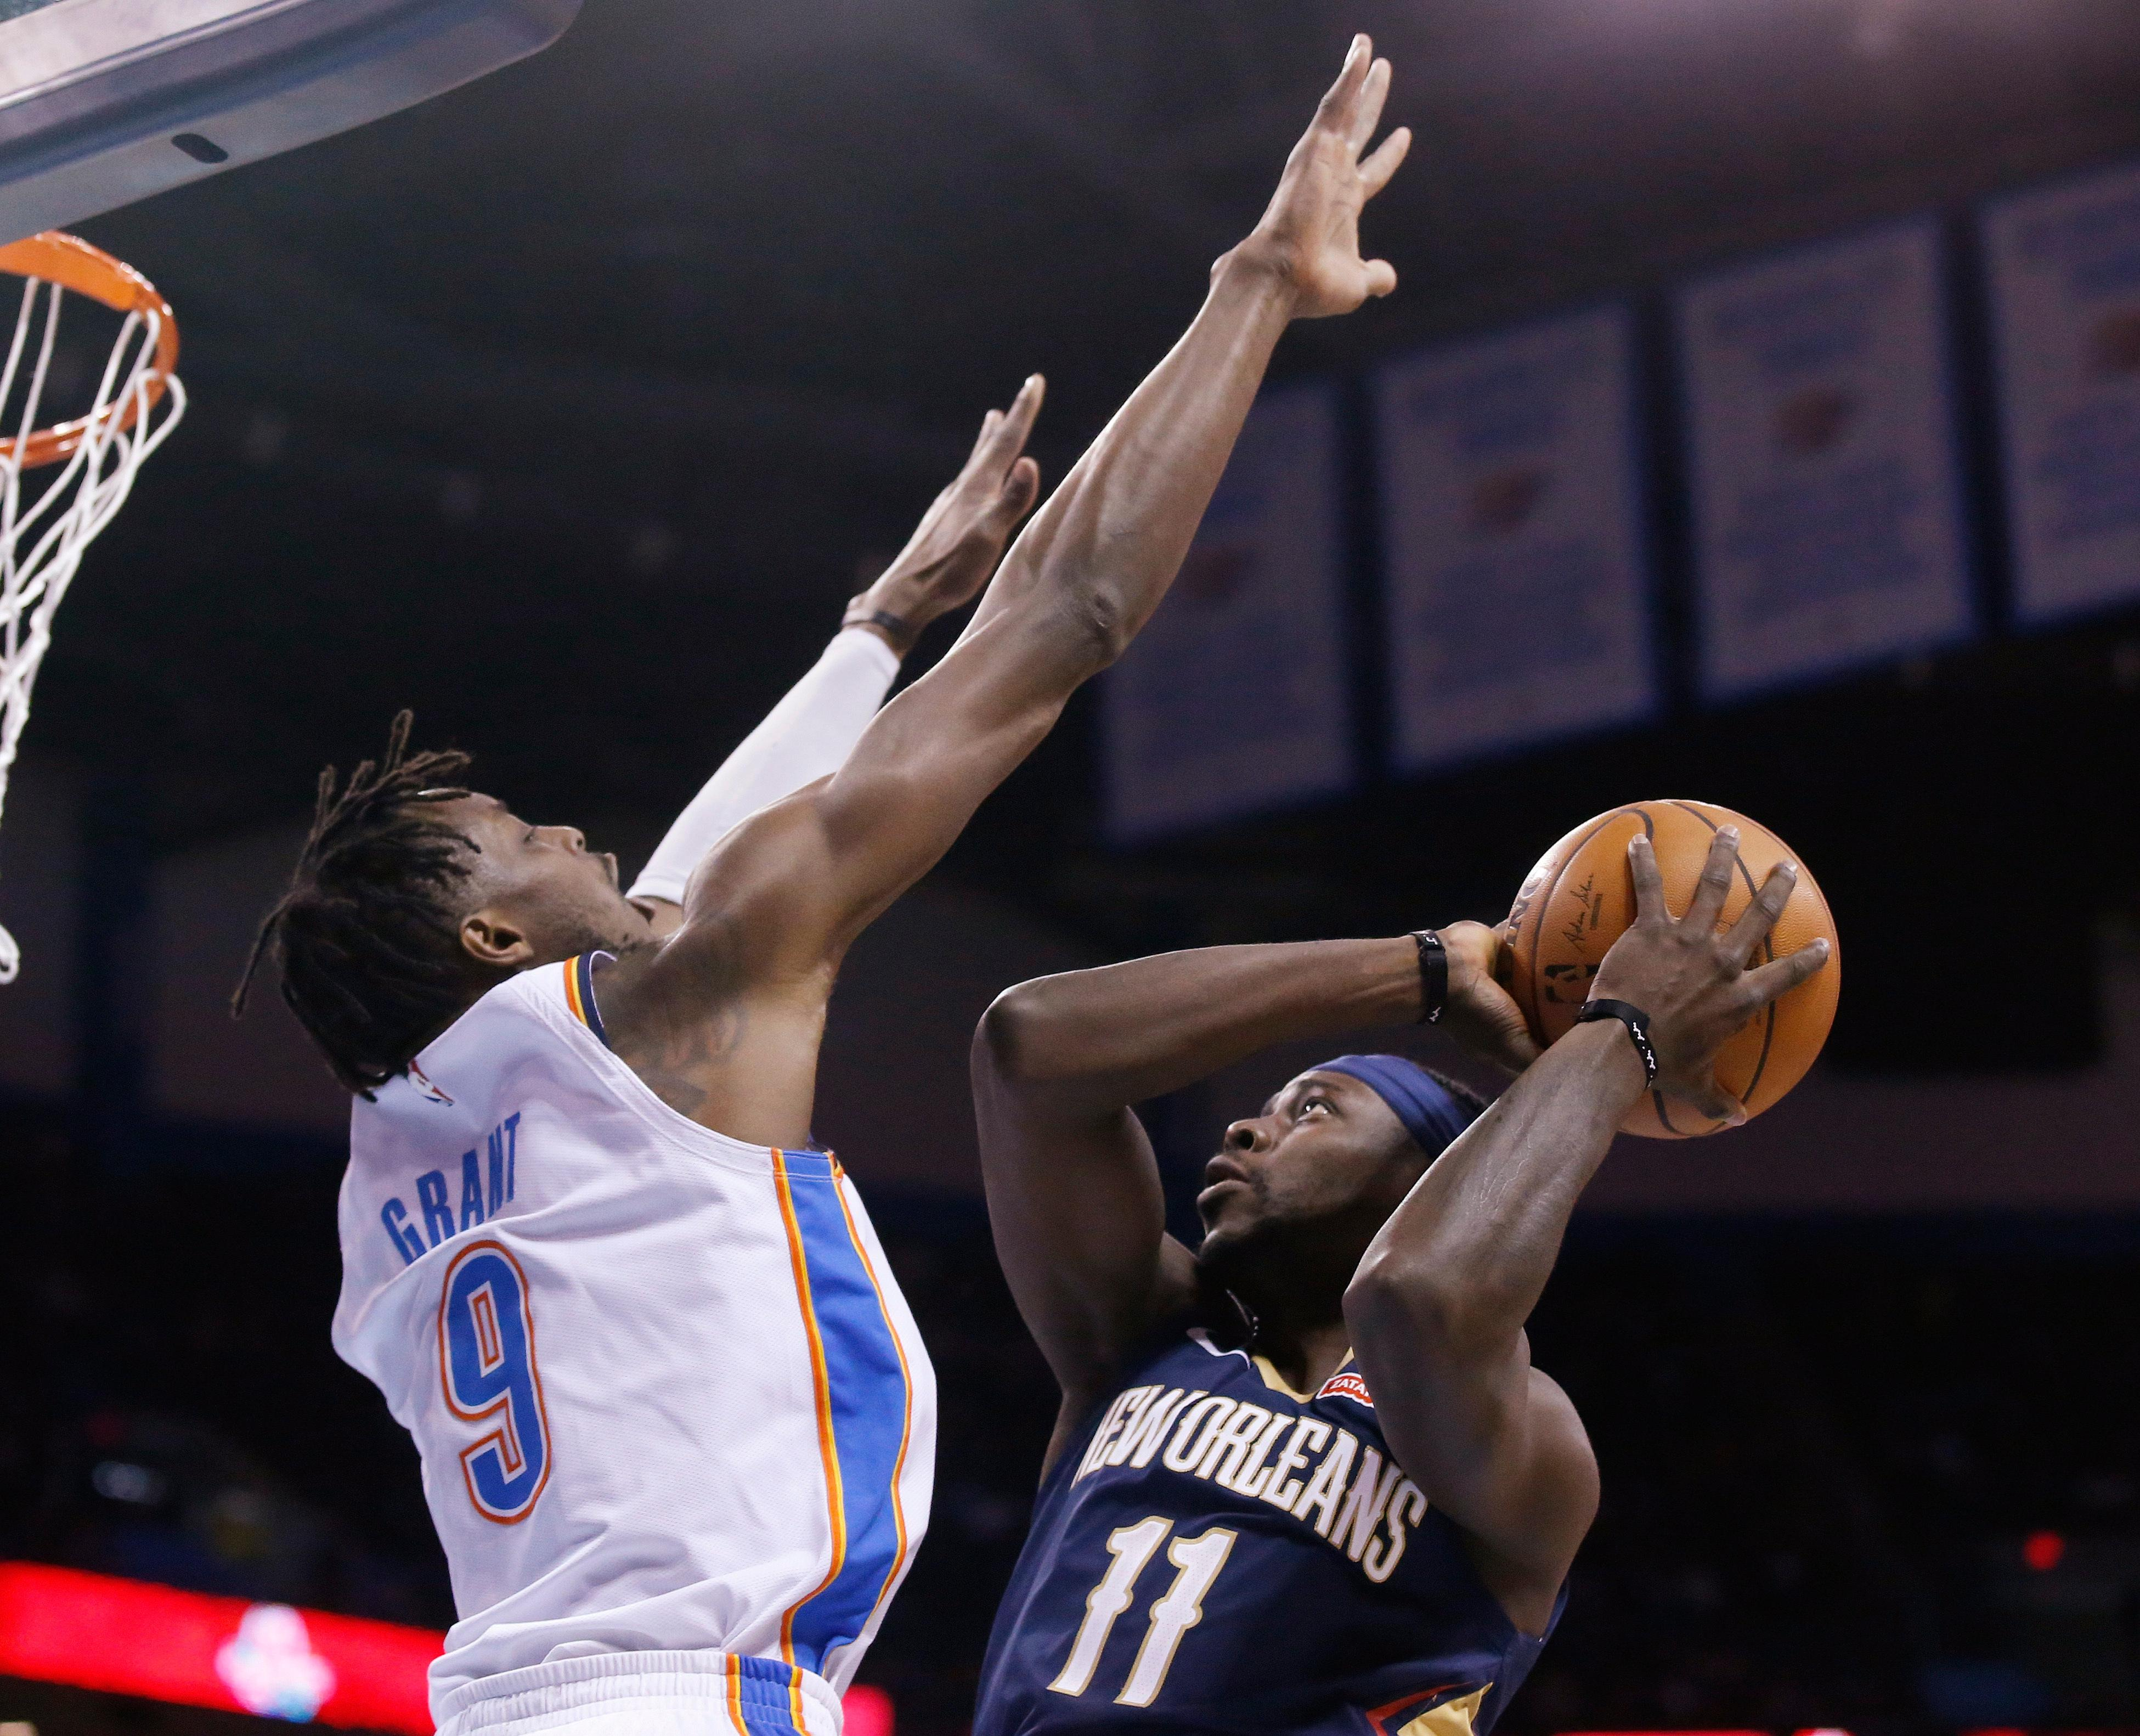 New Orleans Pelicans guard Jrue Holiday (11) shoots as Oklahoma City Thunder forward Jerami Grant (9) defends during the first half of an NBA basketball game in Oklahoma City, Thursday, Jan. 24, 2019. (AP Photo/Sue Ogrocki)